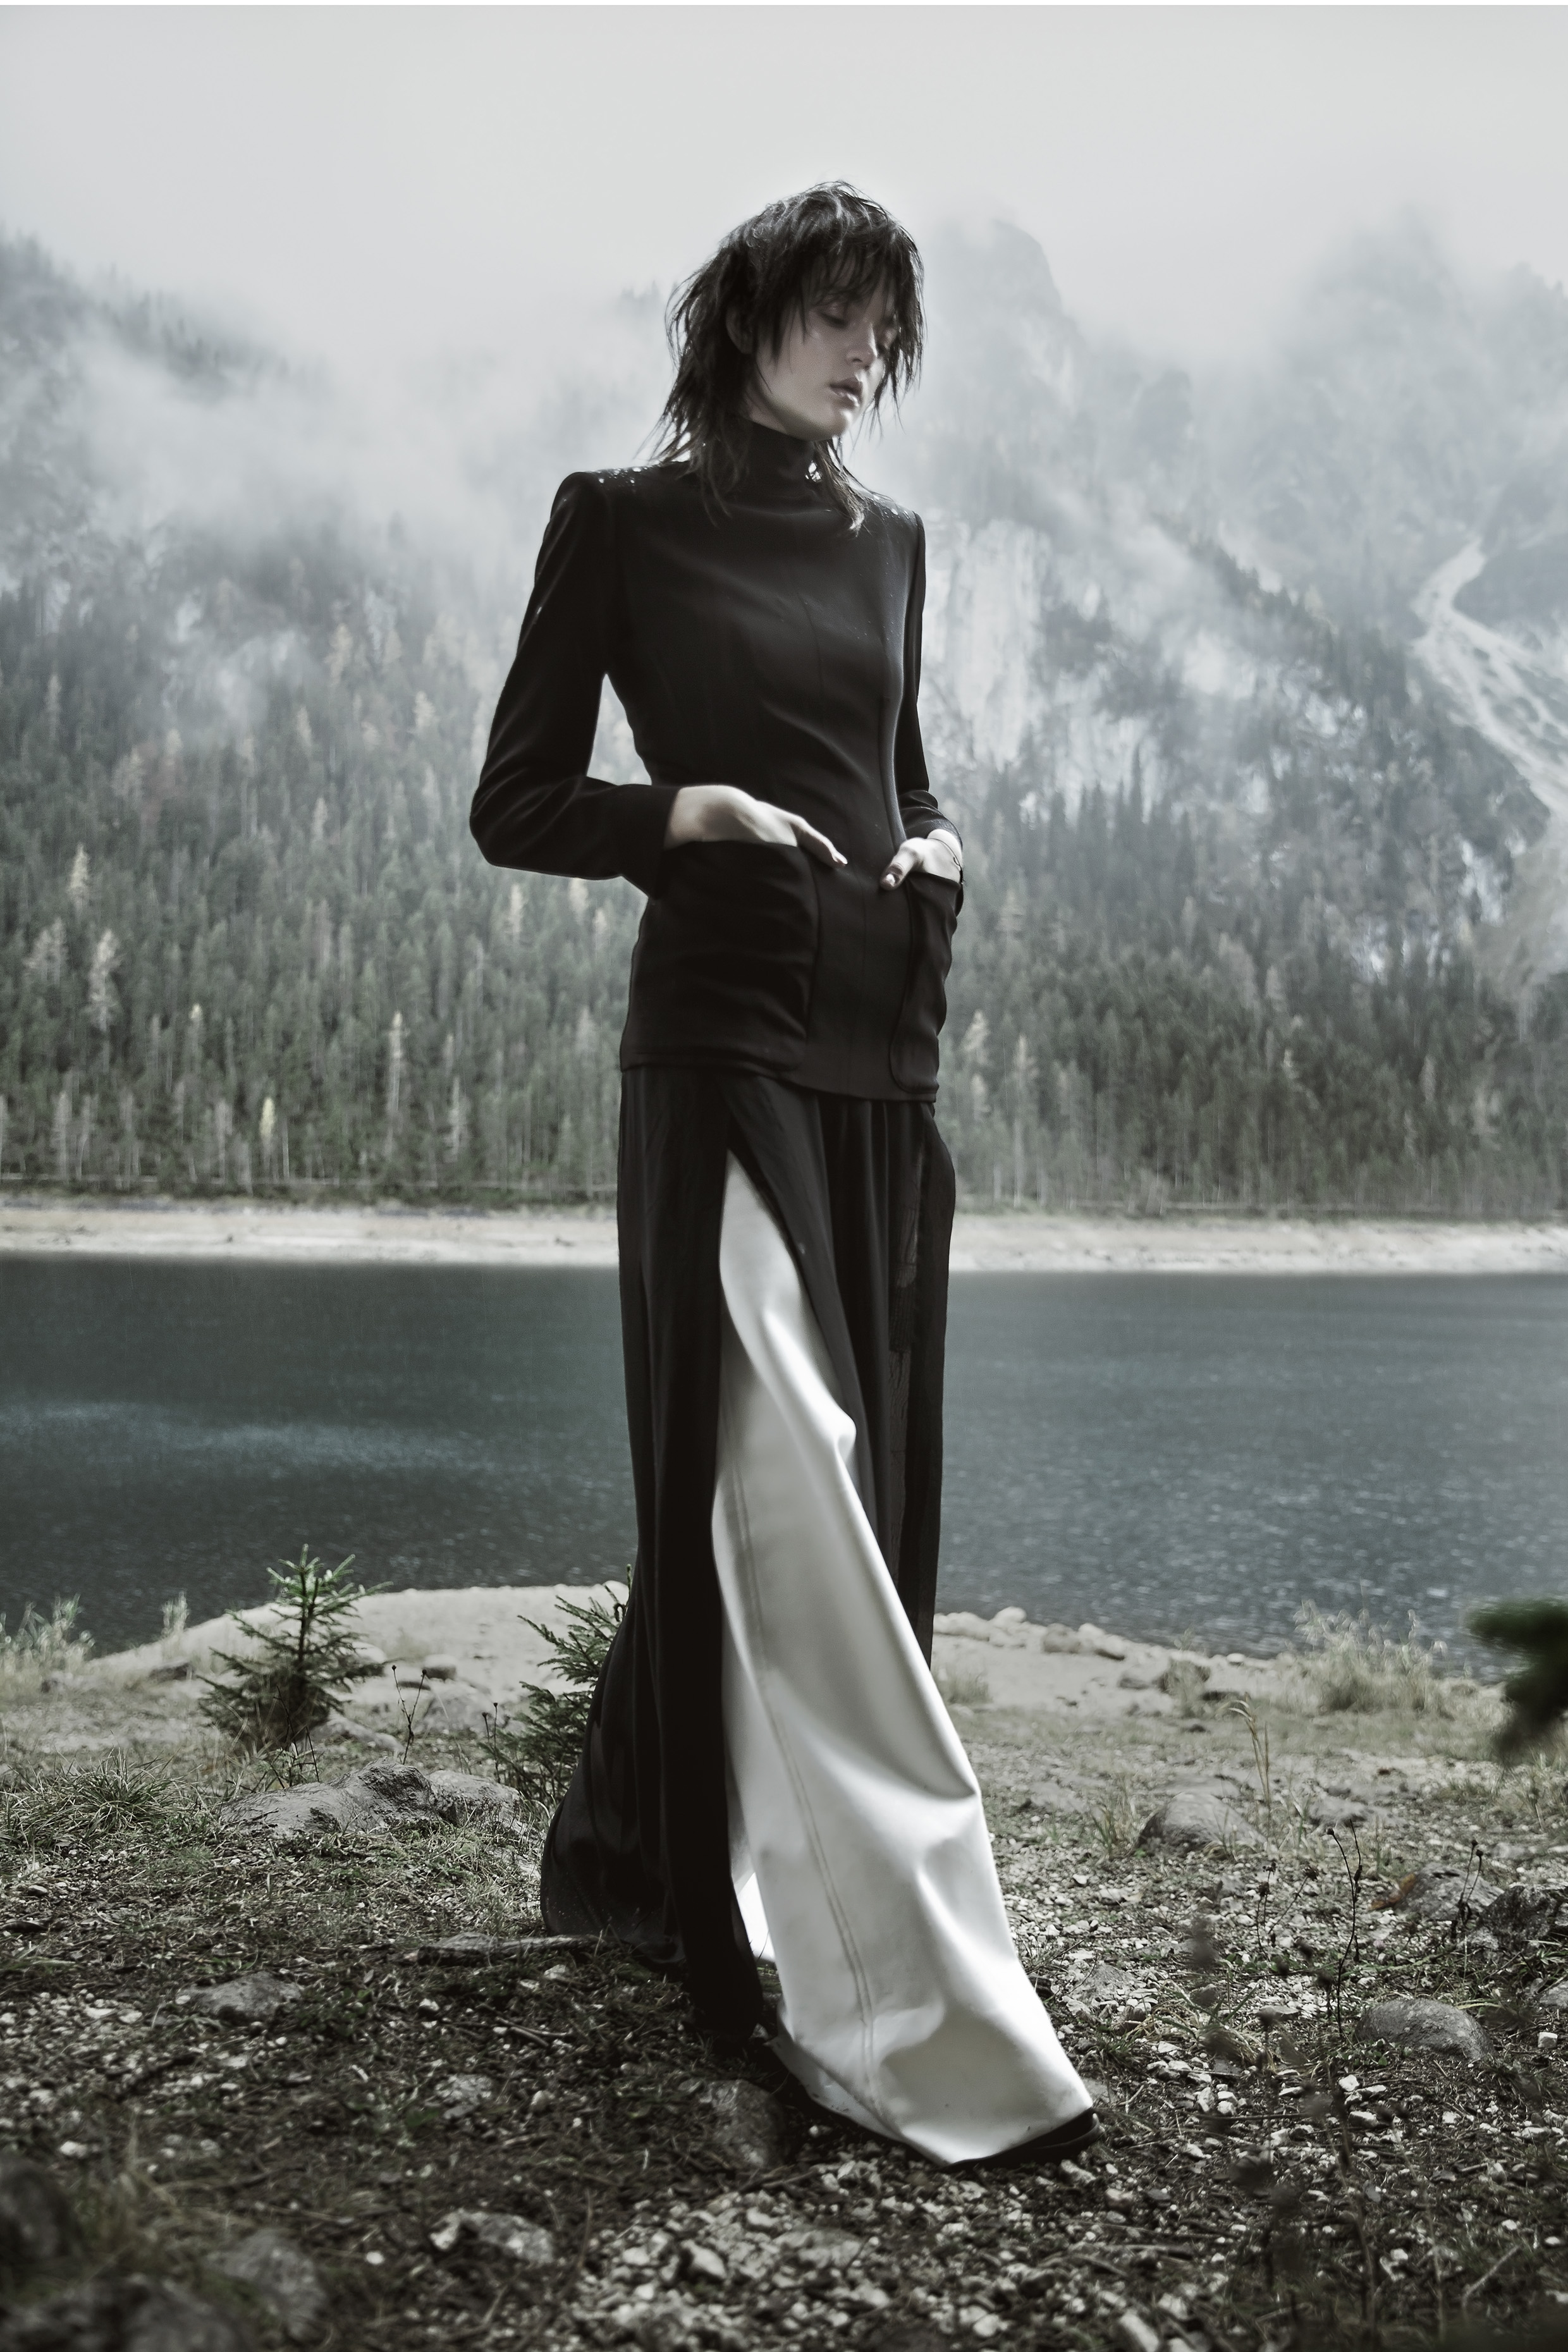 Black 1986 Réedition corset jacket by Jean Paul Gaultier | Dark Blue chiffon dress with side slits by Ilaria Nistri |Black lace dress by Damir Doma | White wide leg jeans by Lea Peckre | Black ankle booties by Göran Horal